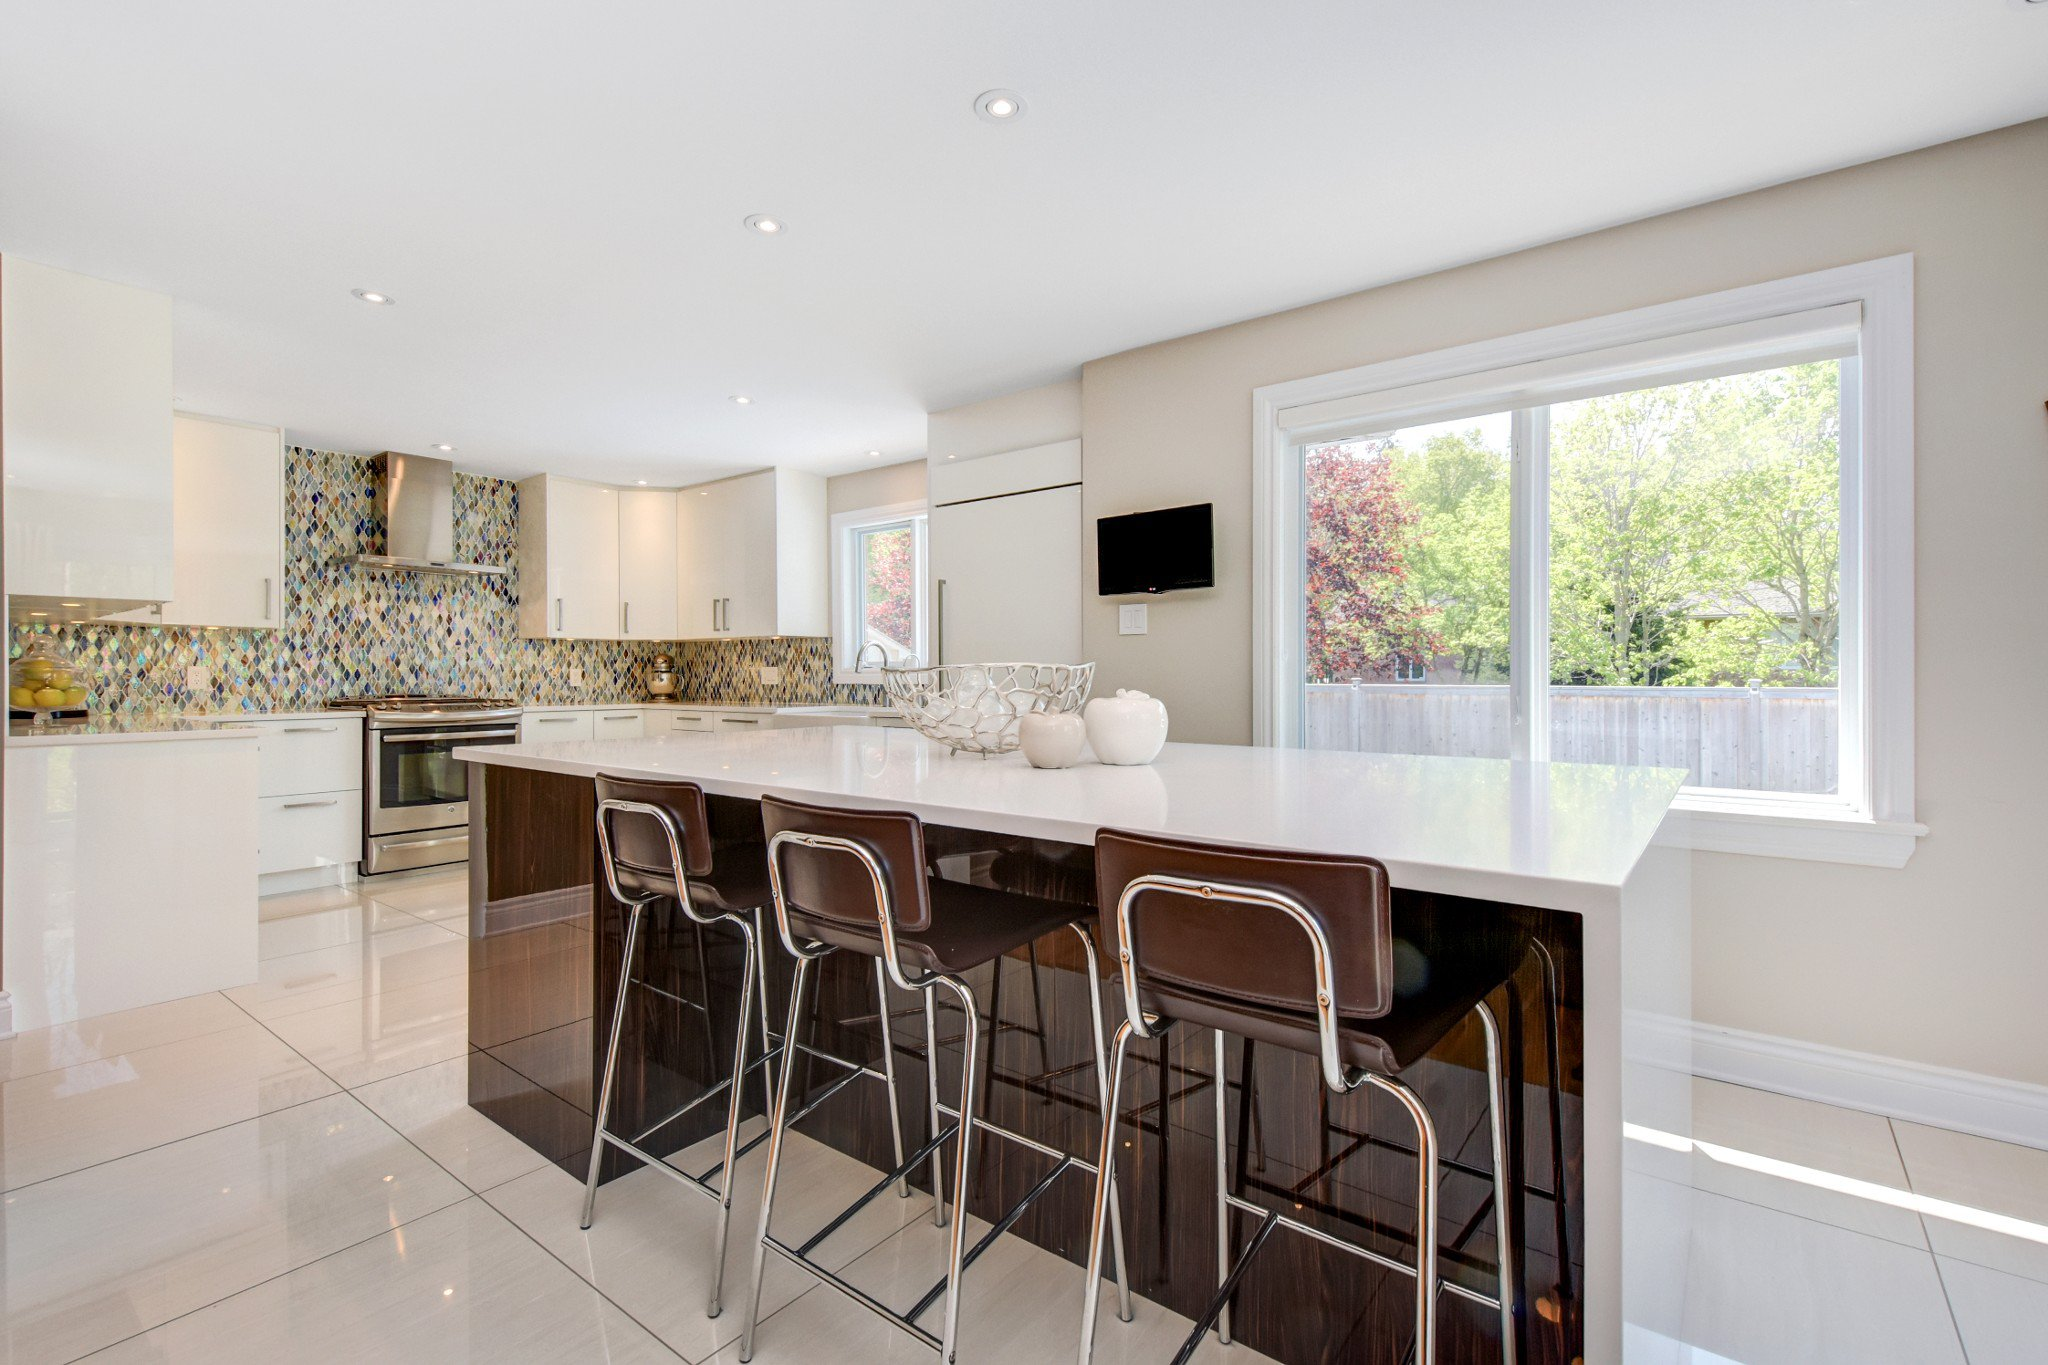 Photo 21: Photos: 1490 REINDEER WAY.: Greely House for sale (Ottawa)  : MLS®# 1109530